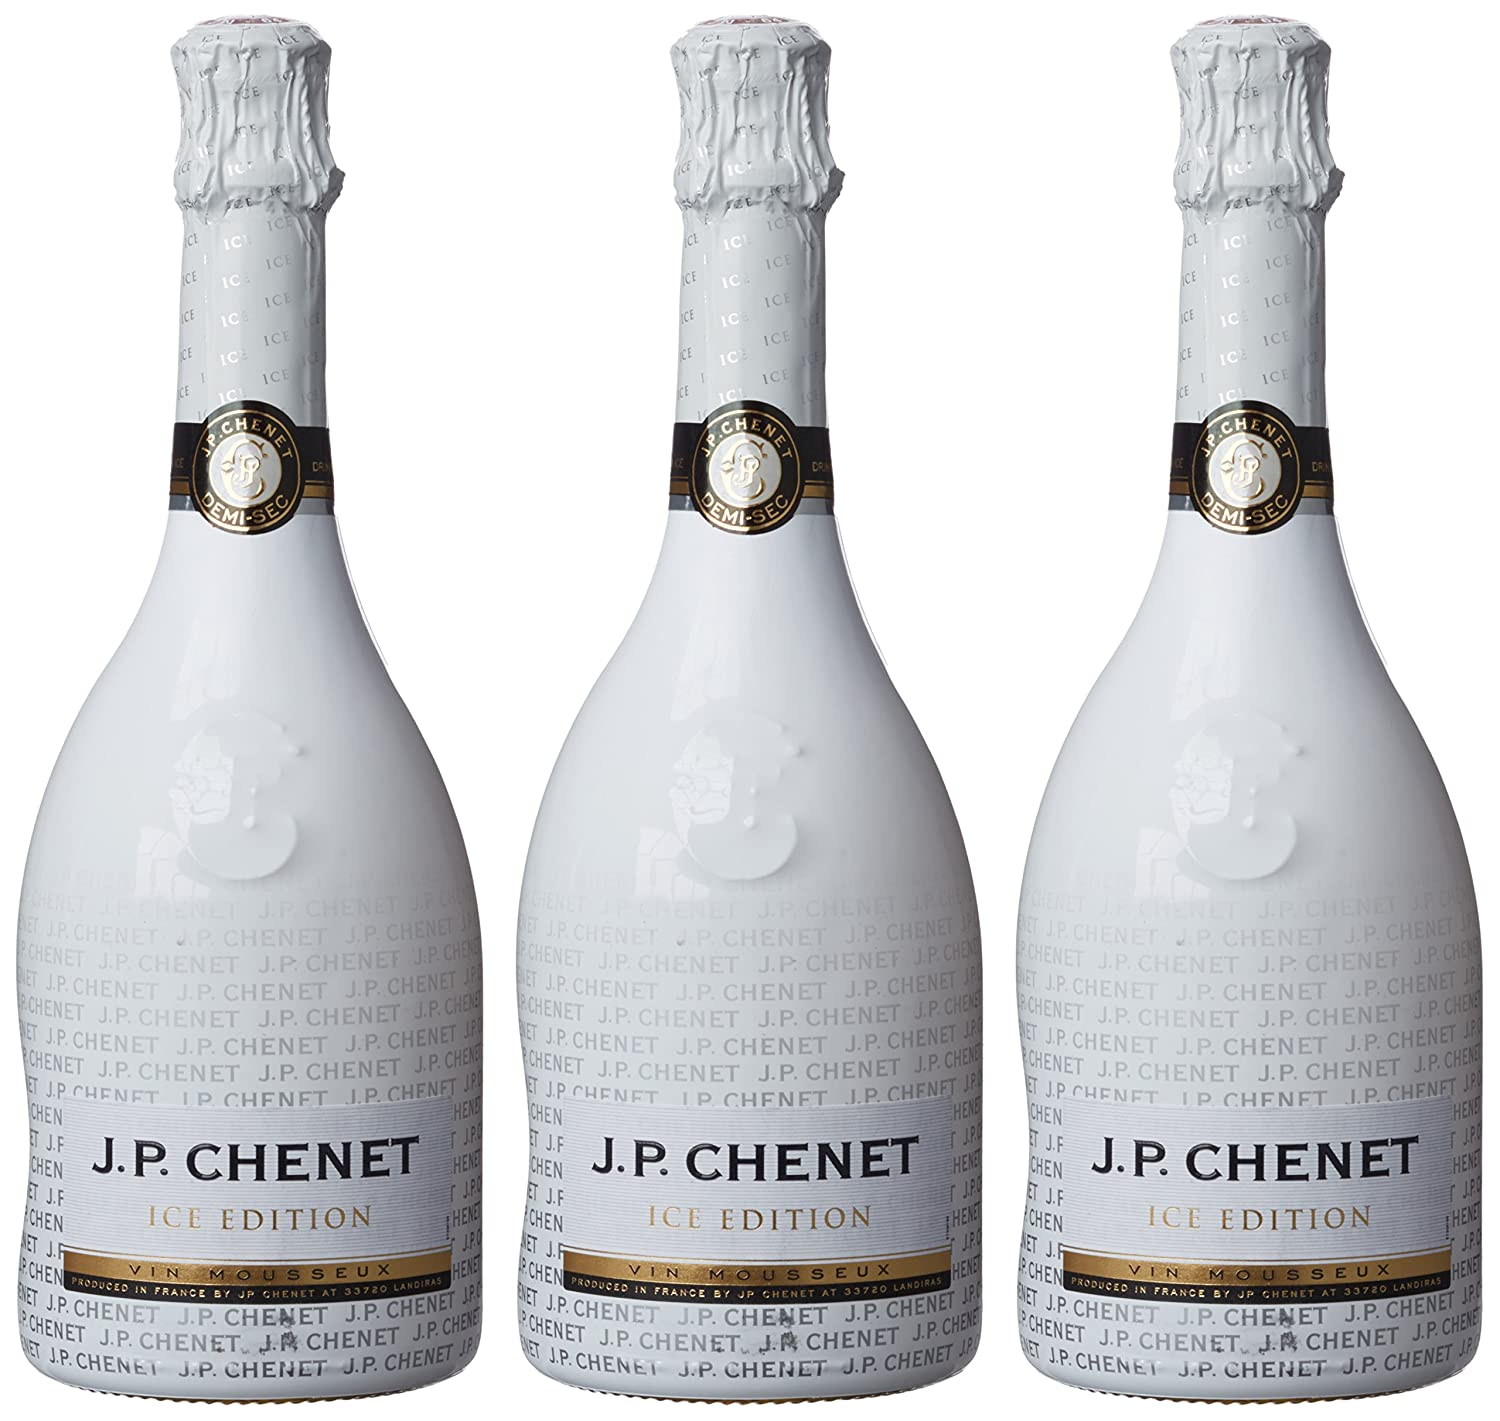 Baby champagne: description, composition, manufacturers and reviews 75